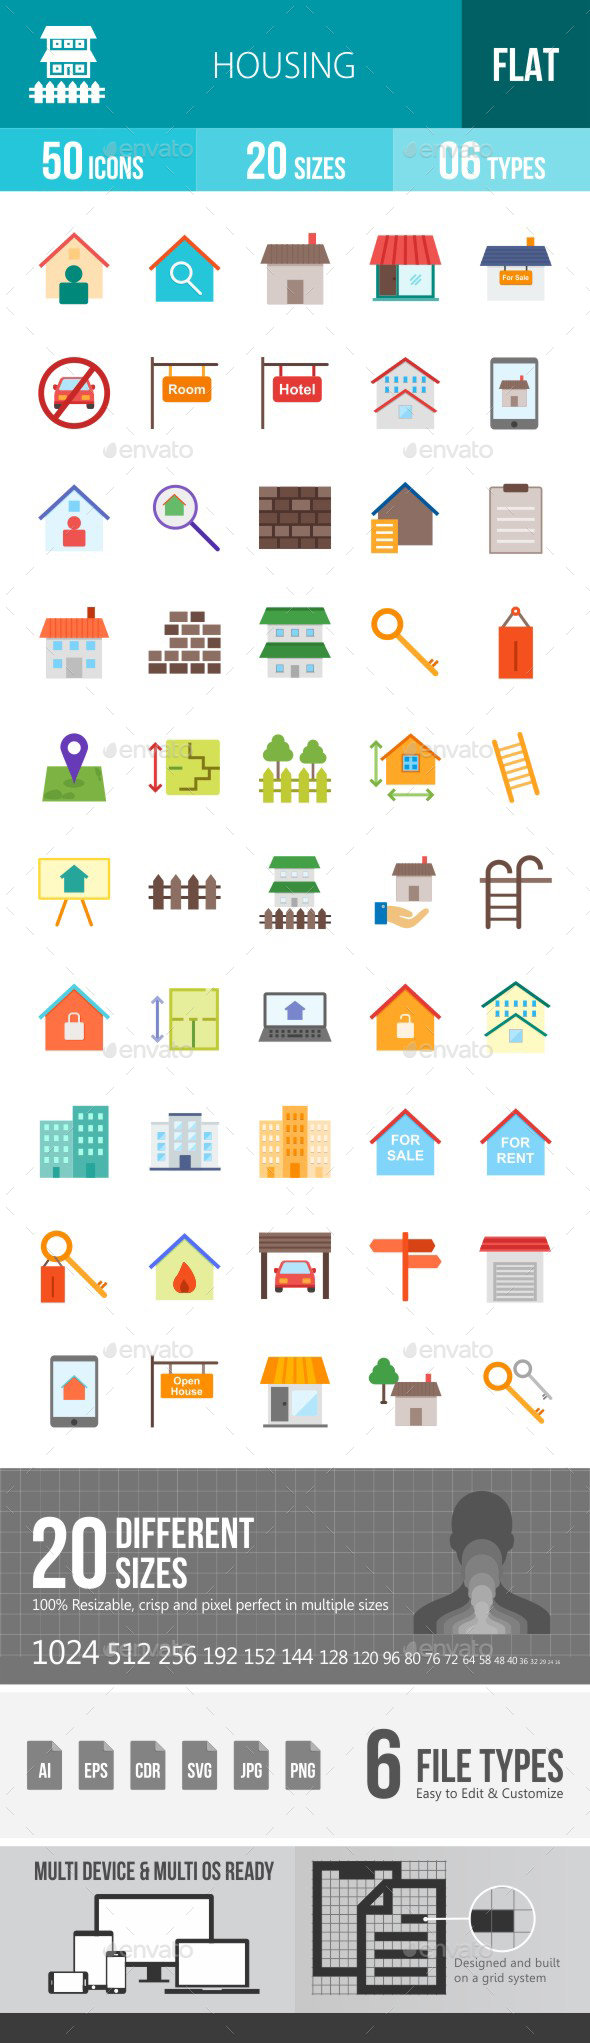 Housing Flat Multicolor Icons - Icons